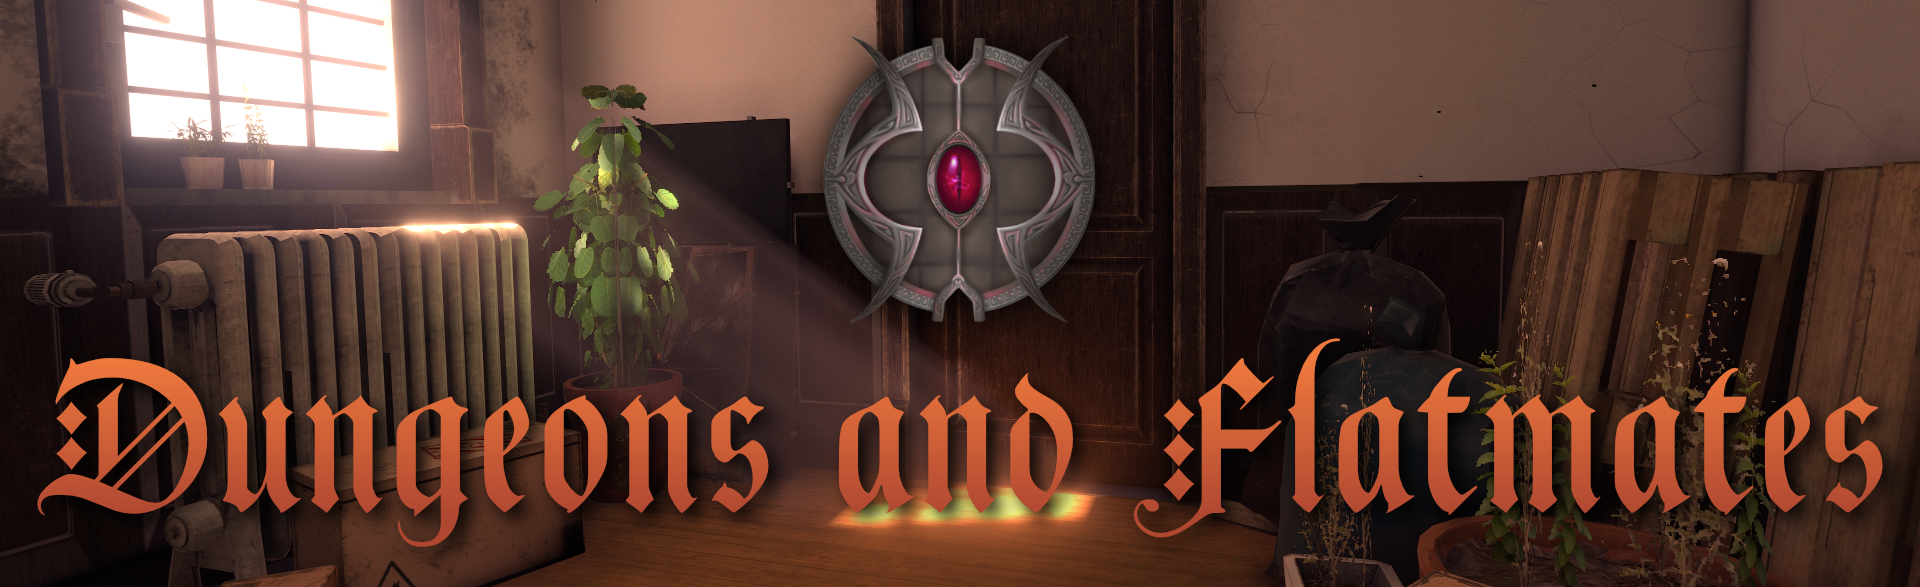 Dungeons and Flatmates